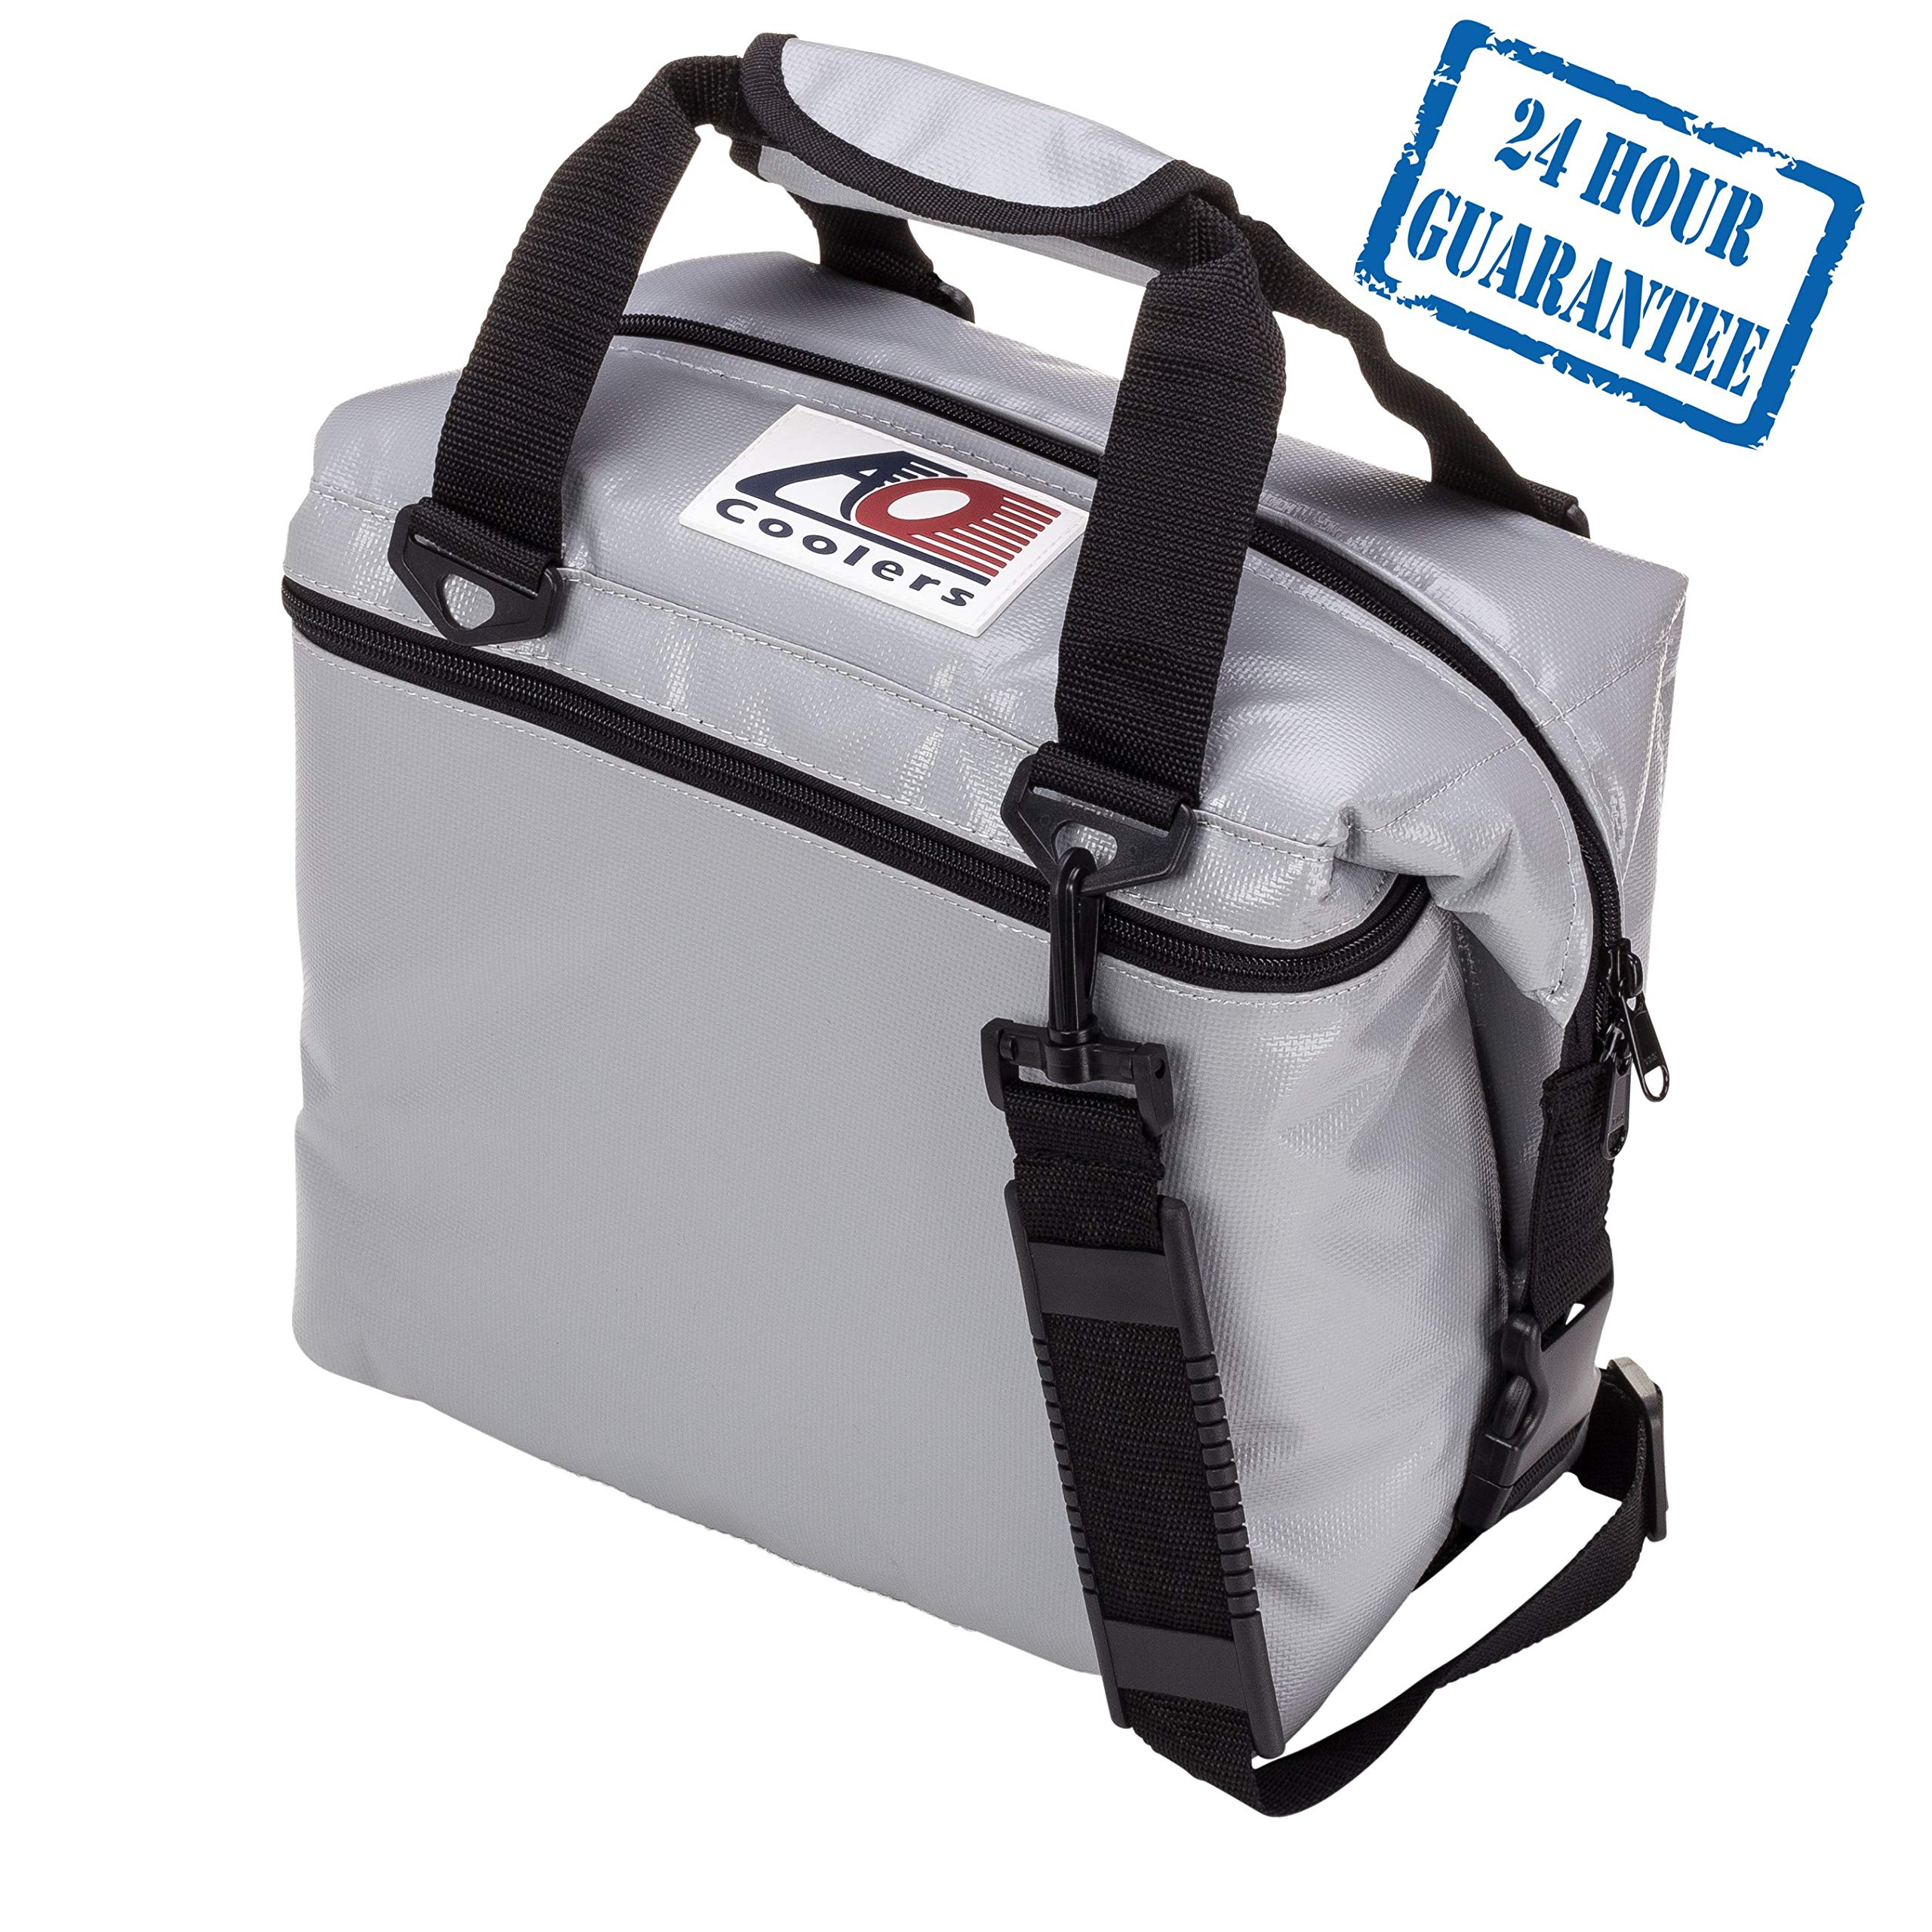 AO Coolers Sportsman Vinyl Soft Cooler with High-Density Insulation, Silver, 36-Can by AO Coolers